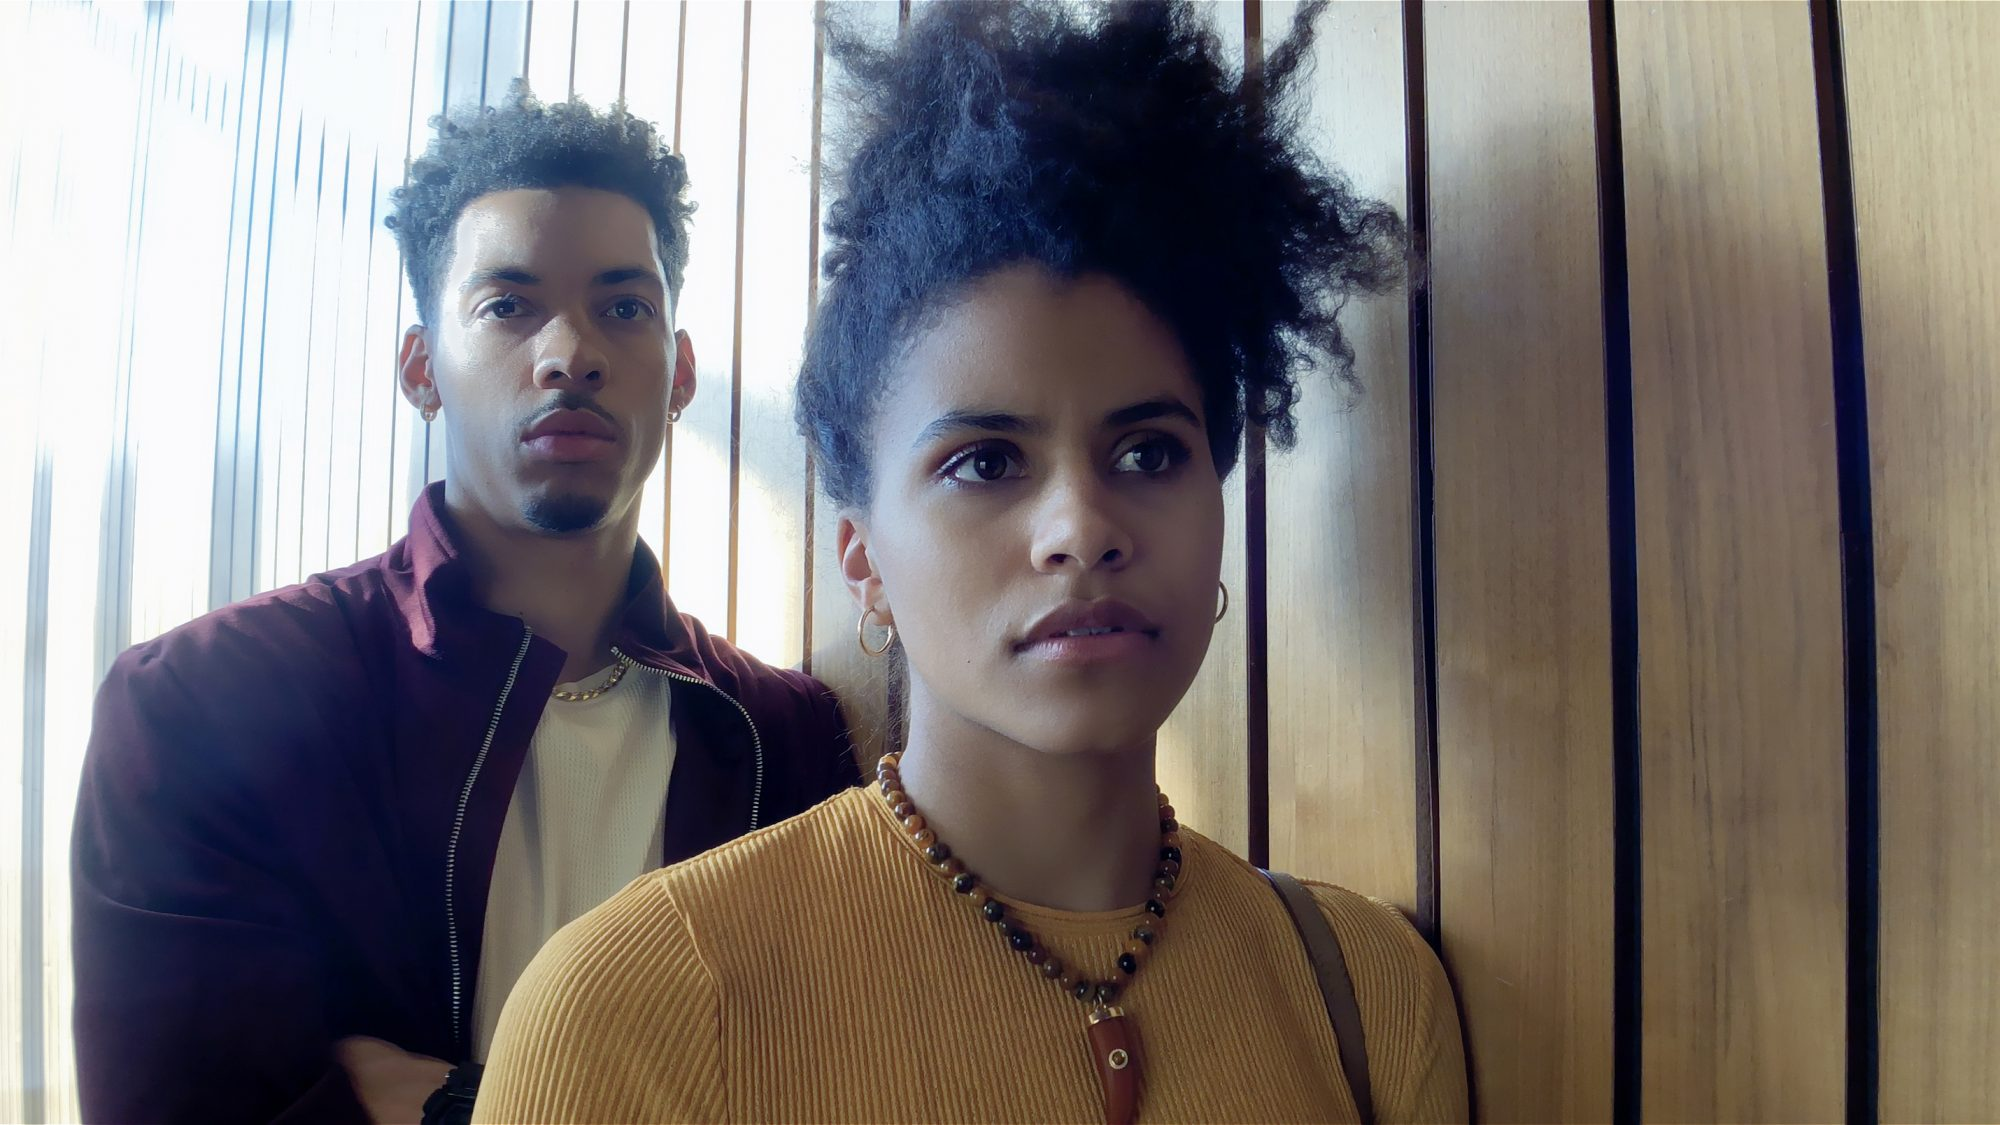 Melvin Gregg as Erick Scott and Zazie Beetz as Sam in High Flying Bird, directed by Steven Soderbergh. Photo by Peter Andrews